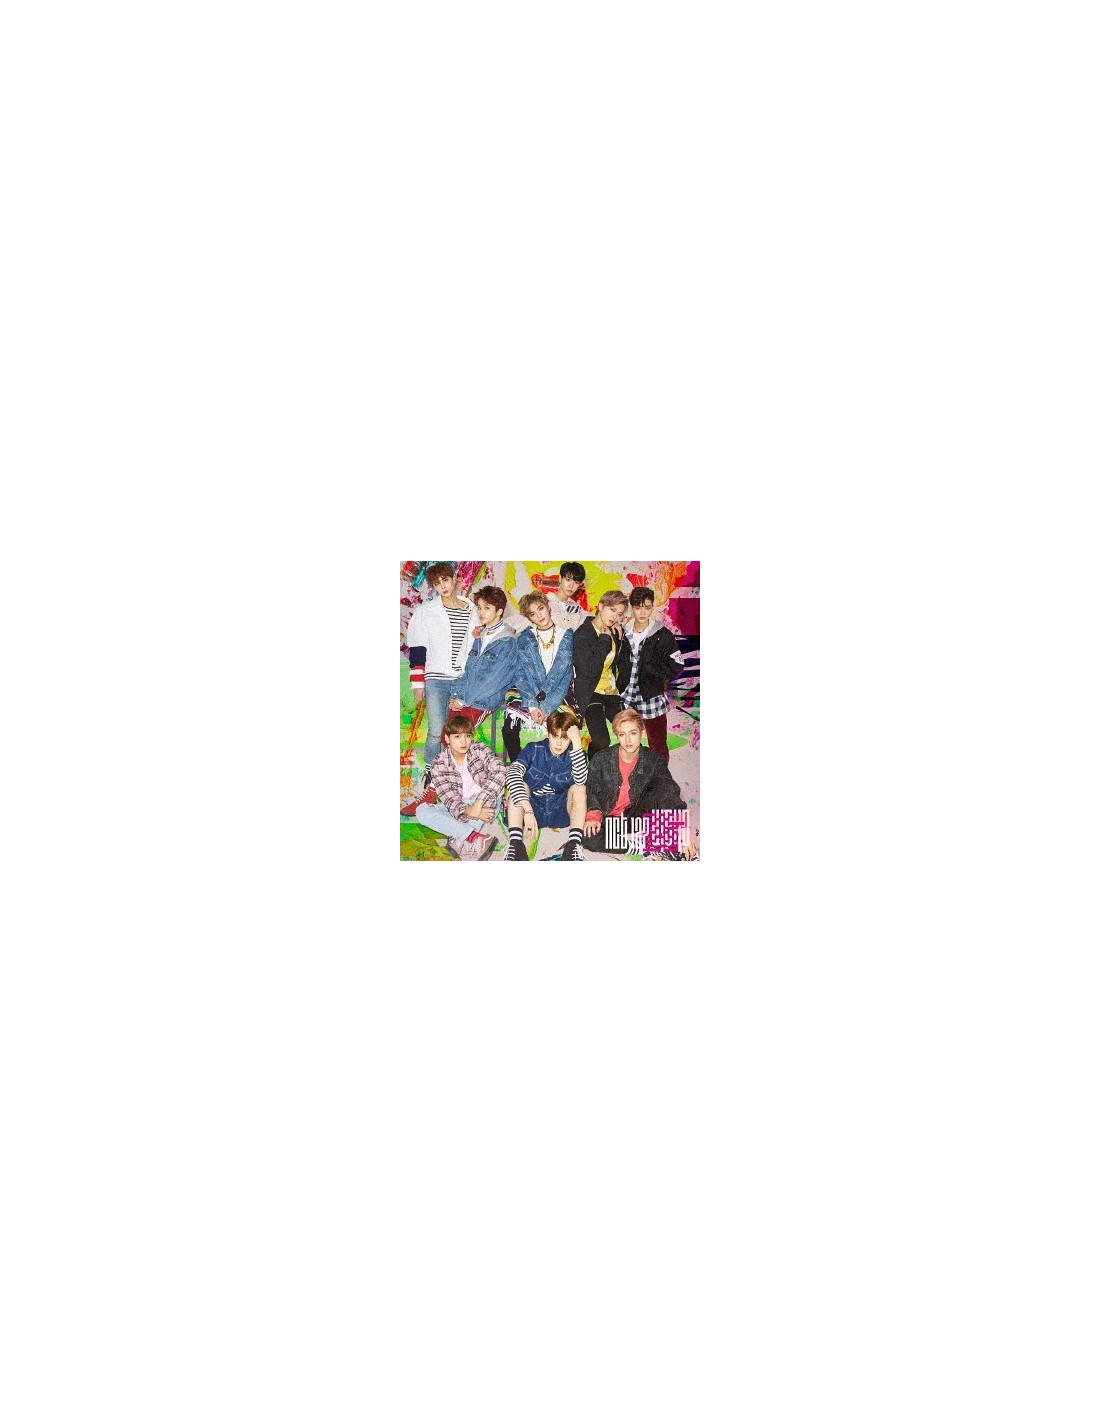 [Japanese Edition] NCT 127 - Chain CD+DVD